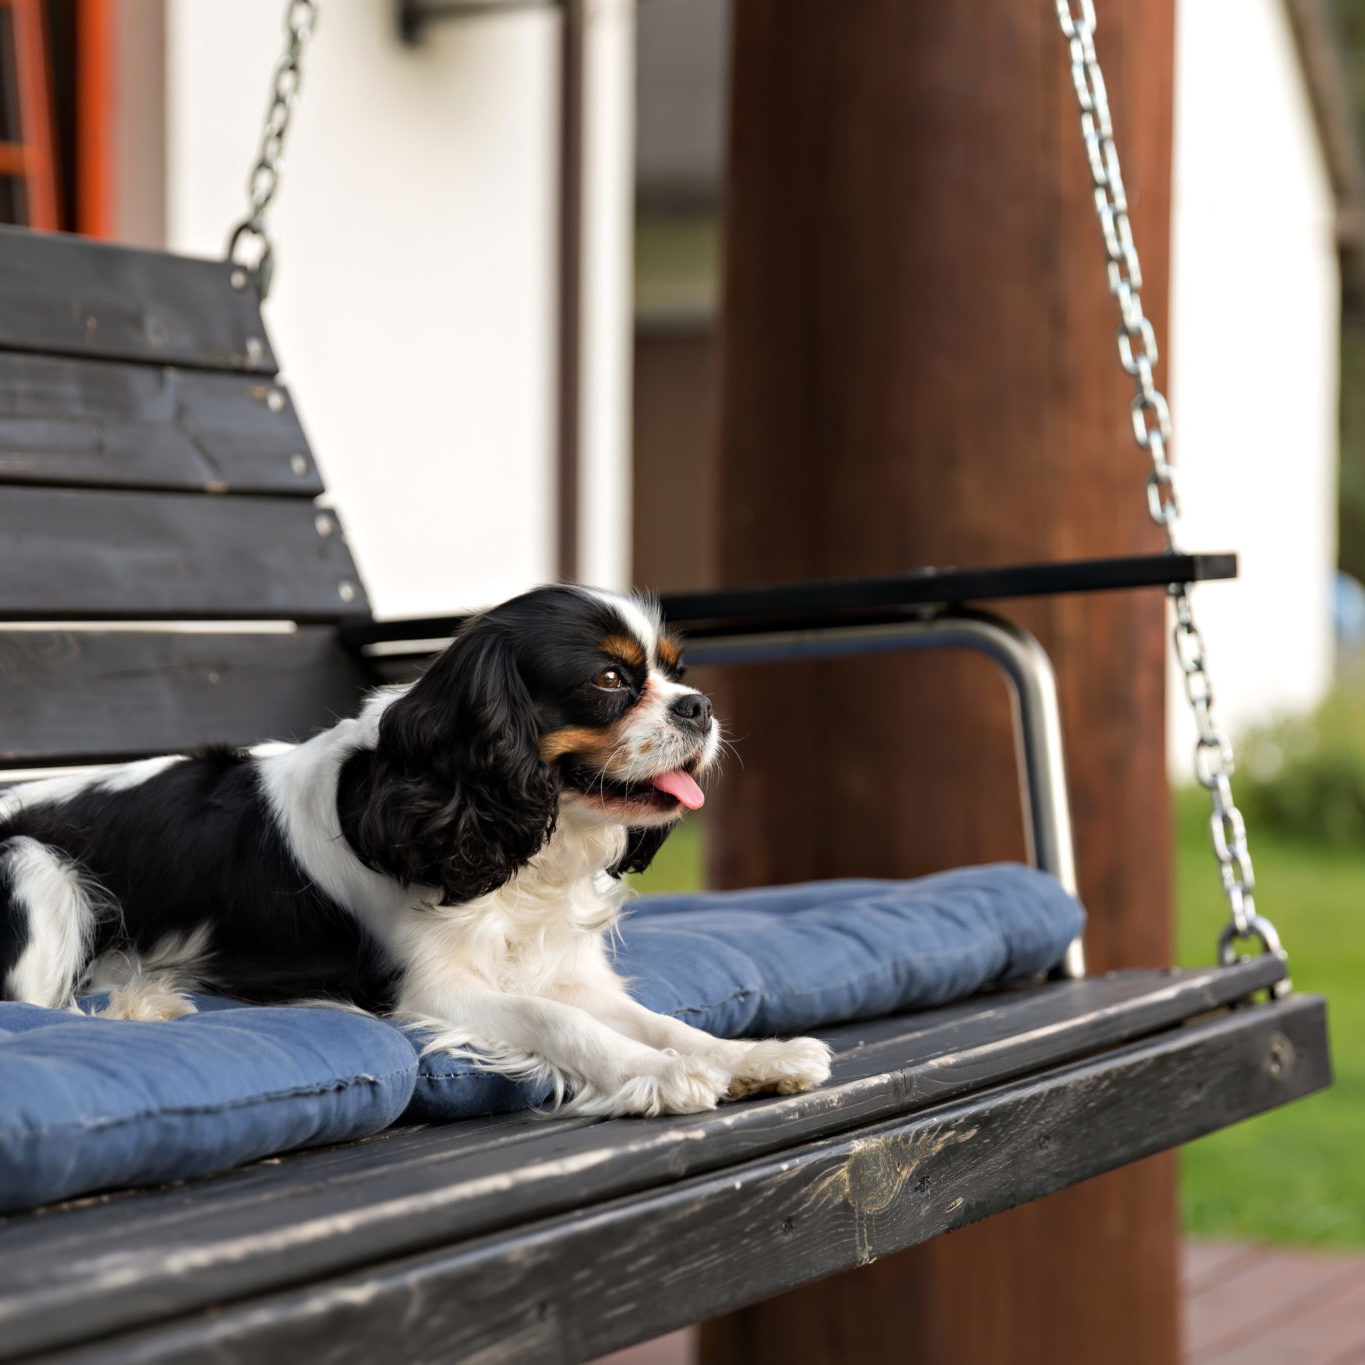 cute dog relaxing on the wooden bench in the garden